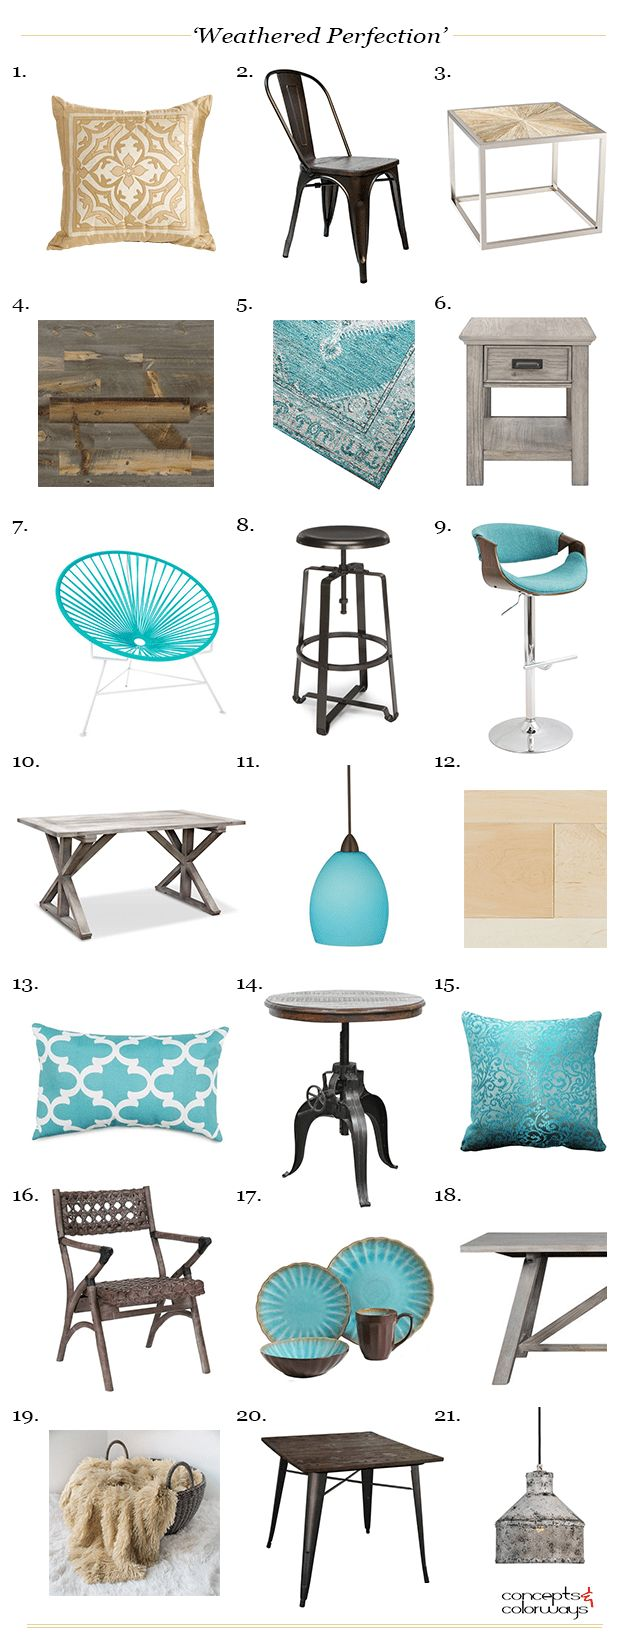 Ombre technique supplies and tips from sherwin williams - Weathered Perfection Product Roundup Interior Design Get The Look Turquoise Accents Sherwin Williams